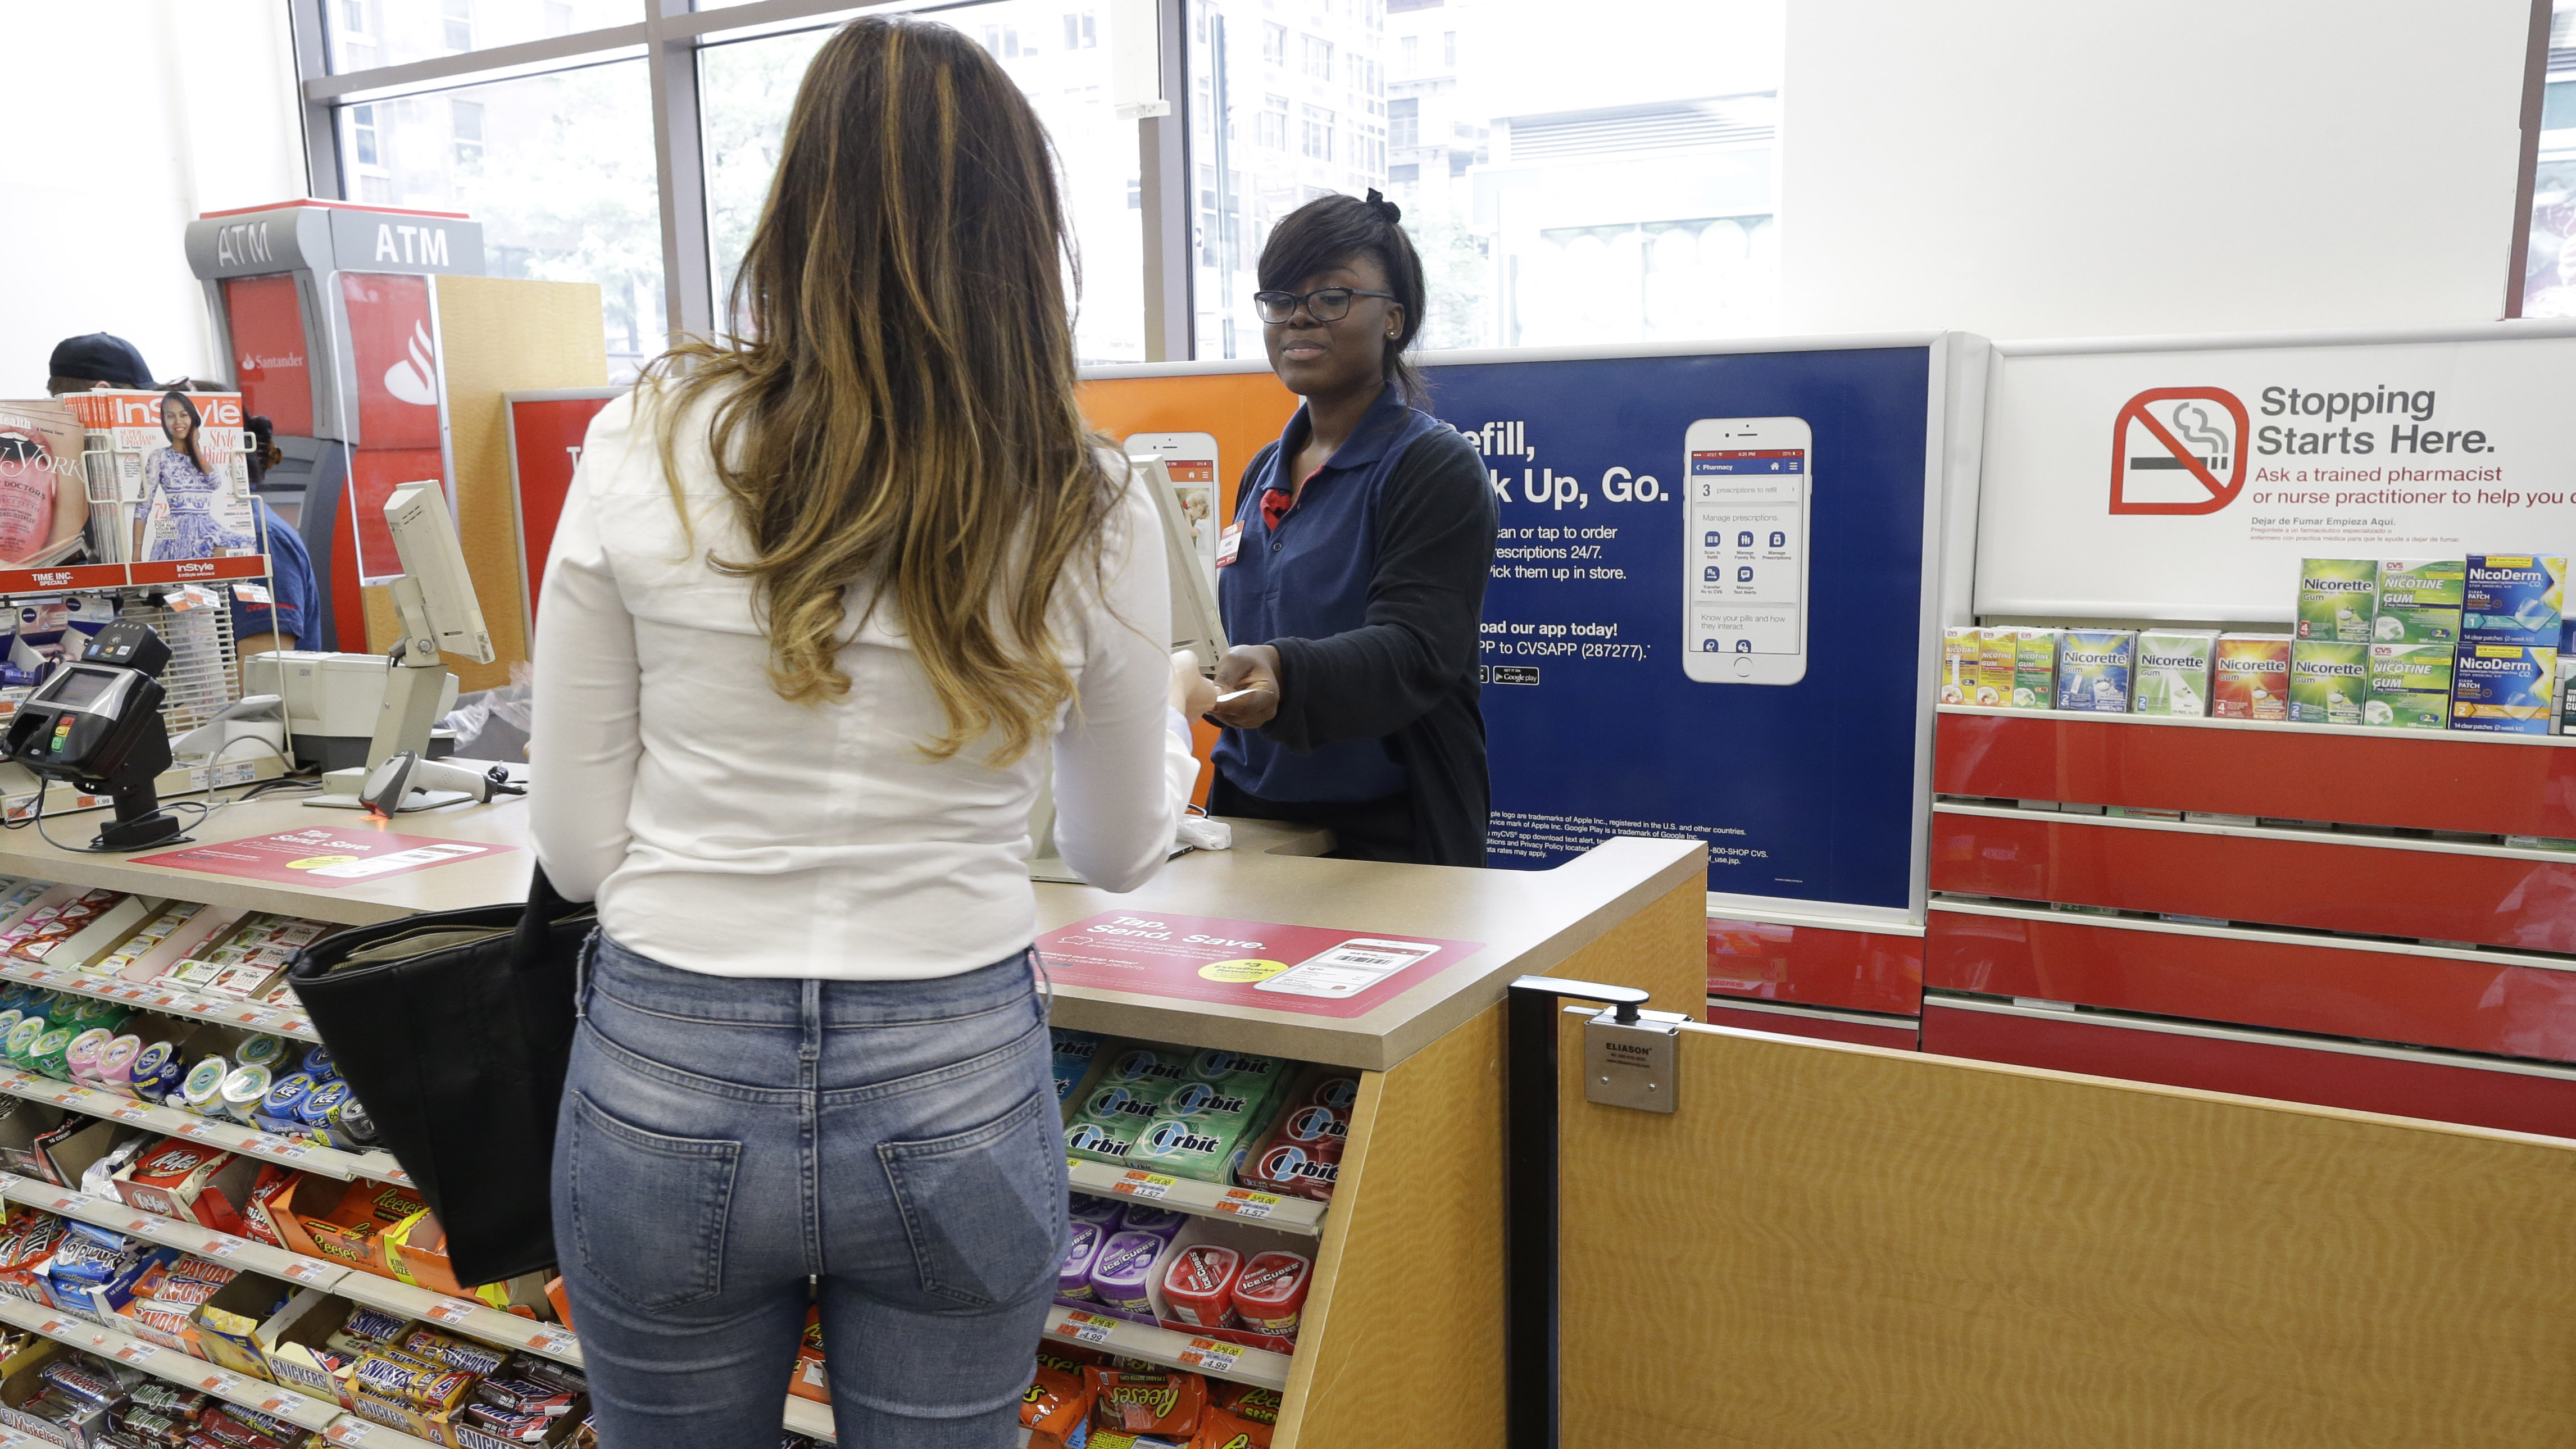 A cashier helps a customer as smoking cessation products are on display where cigarettes used to be at the front of the CVS drugstore in Midtown Manhattan, Wednesday, June 17, 2015. CVS drugstores that quit tobacco sales last year are now getting health and beauty makeovers to attract customers who want more than a prescription refill. (AP Photo/Mary Altaffer)